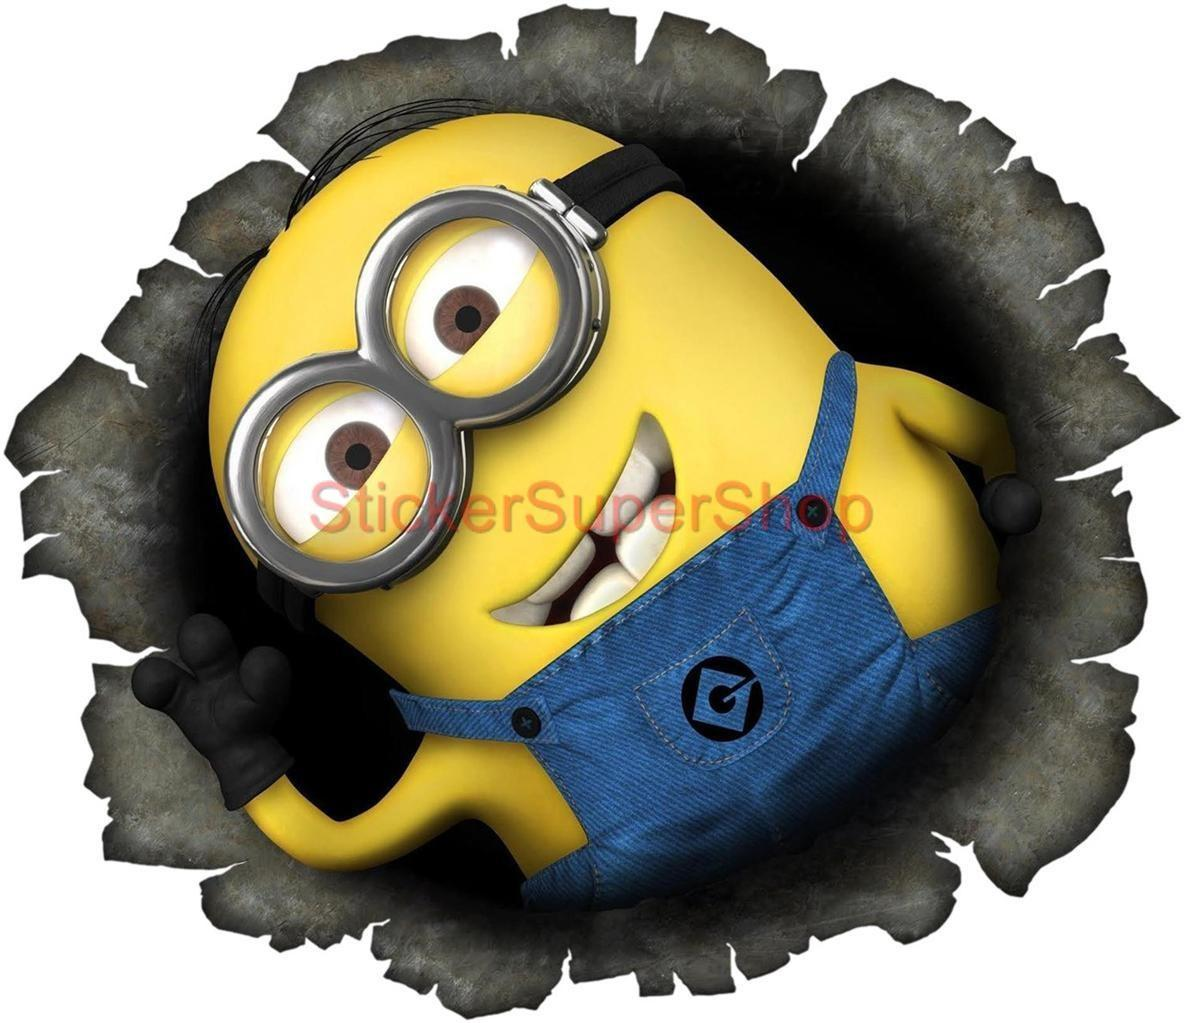 Despicable Minion Wall Movie Decal Removable